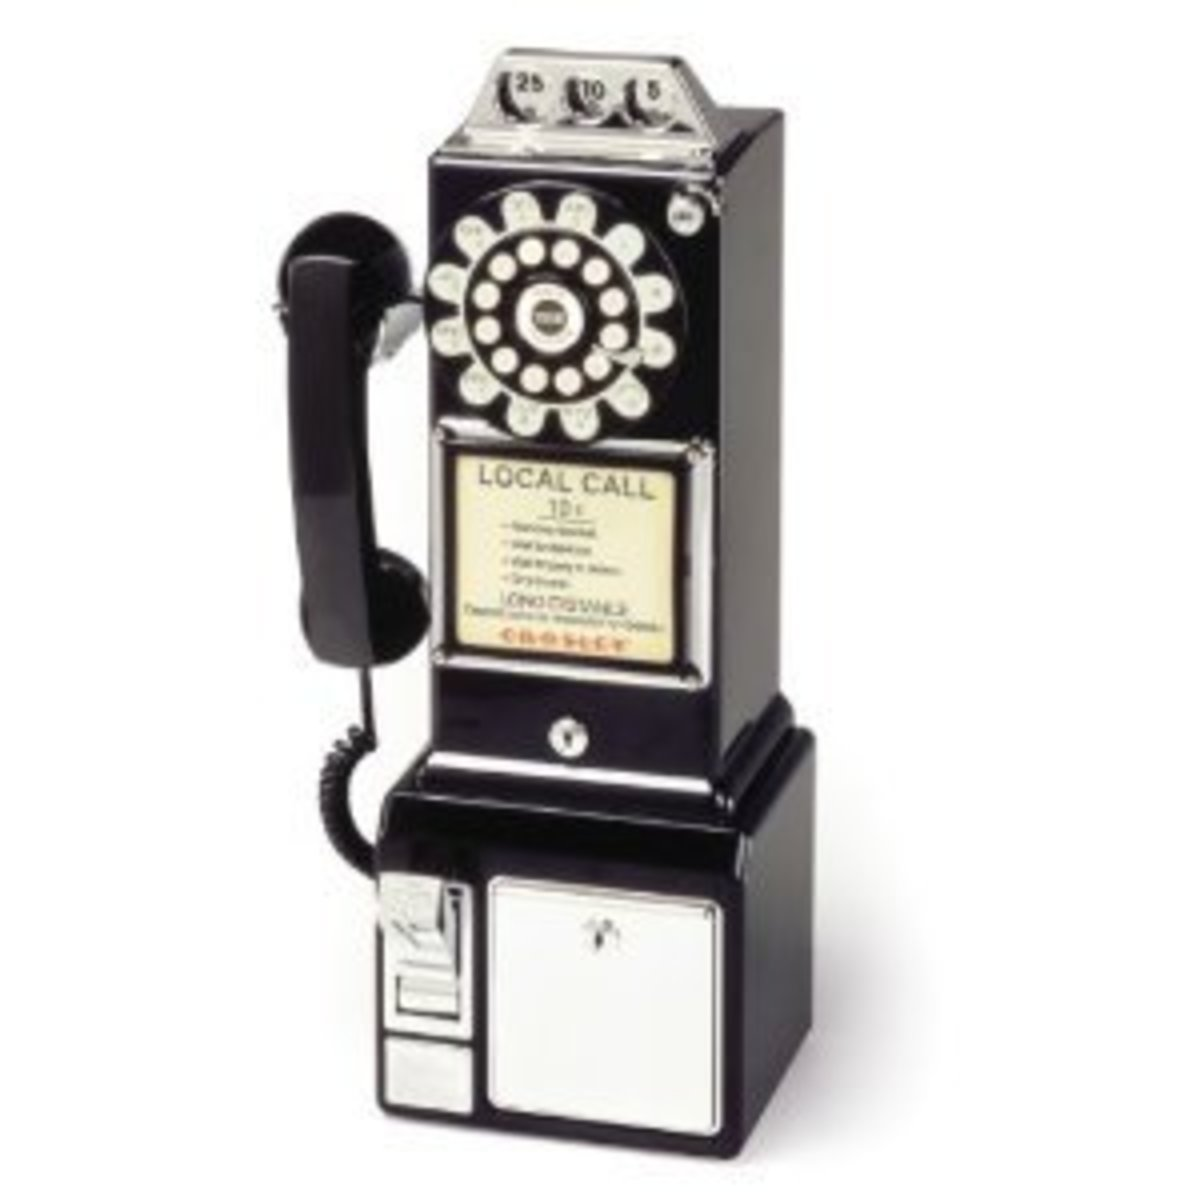 Old fashioned pay phone